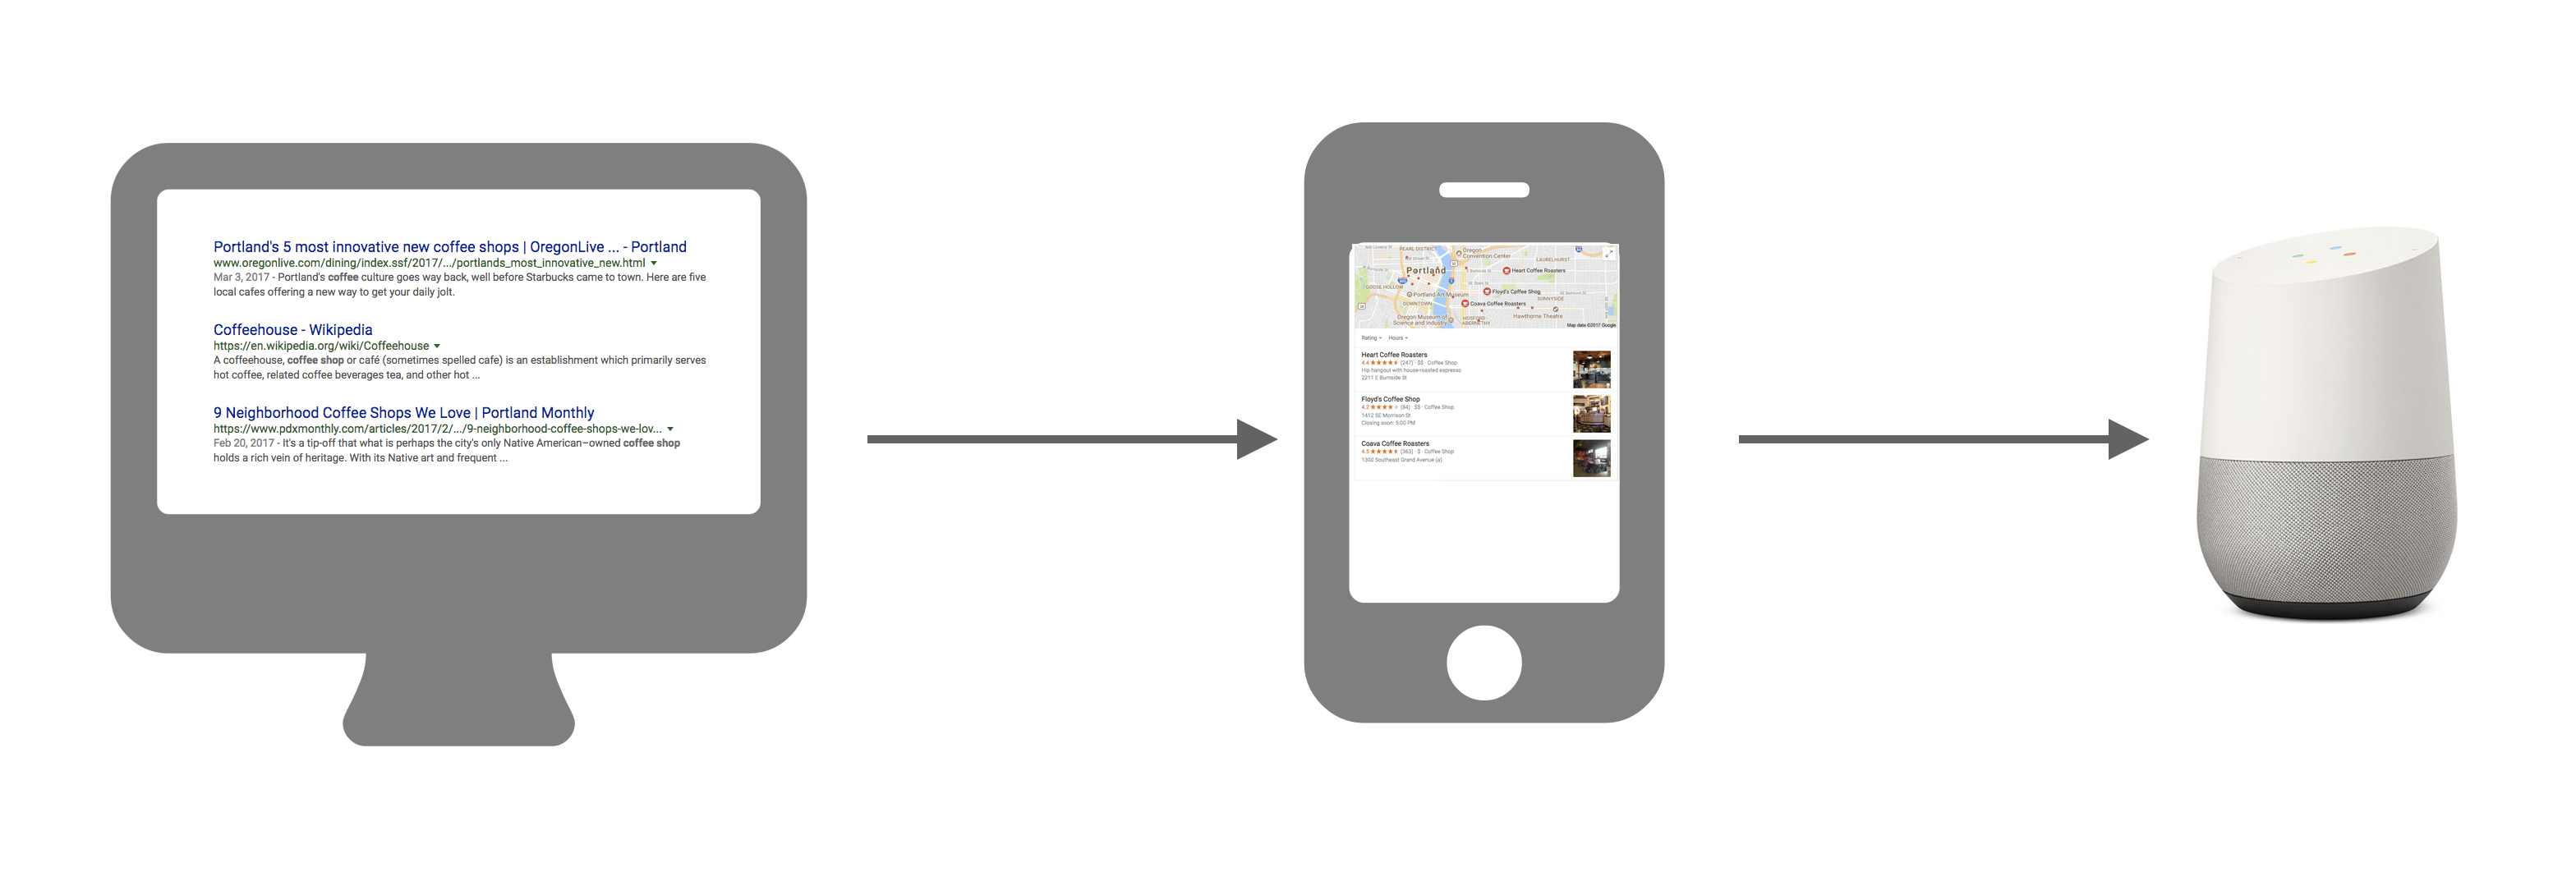 evolution of local search results